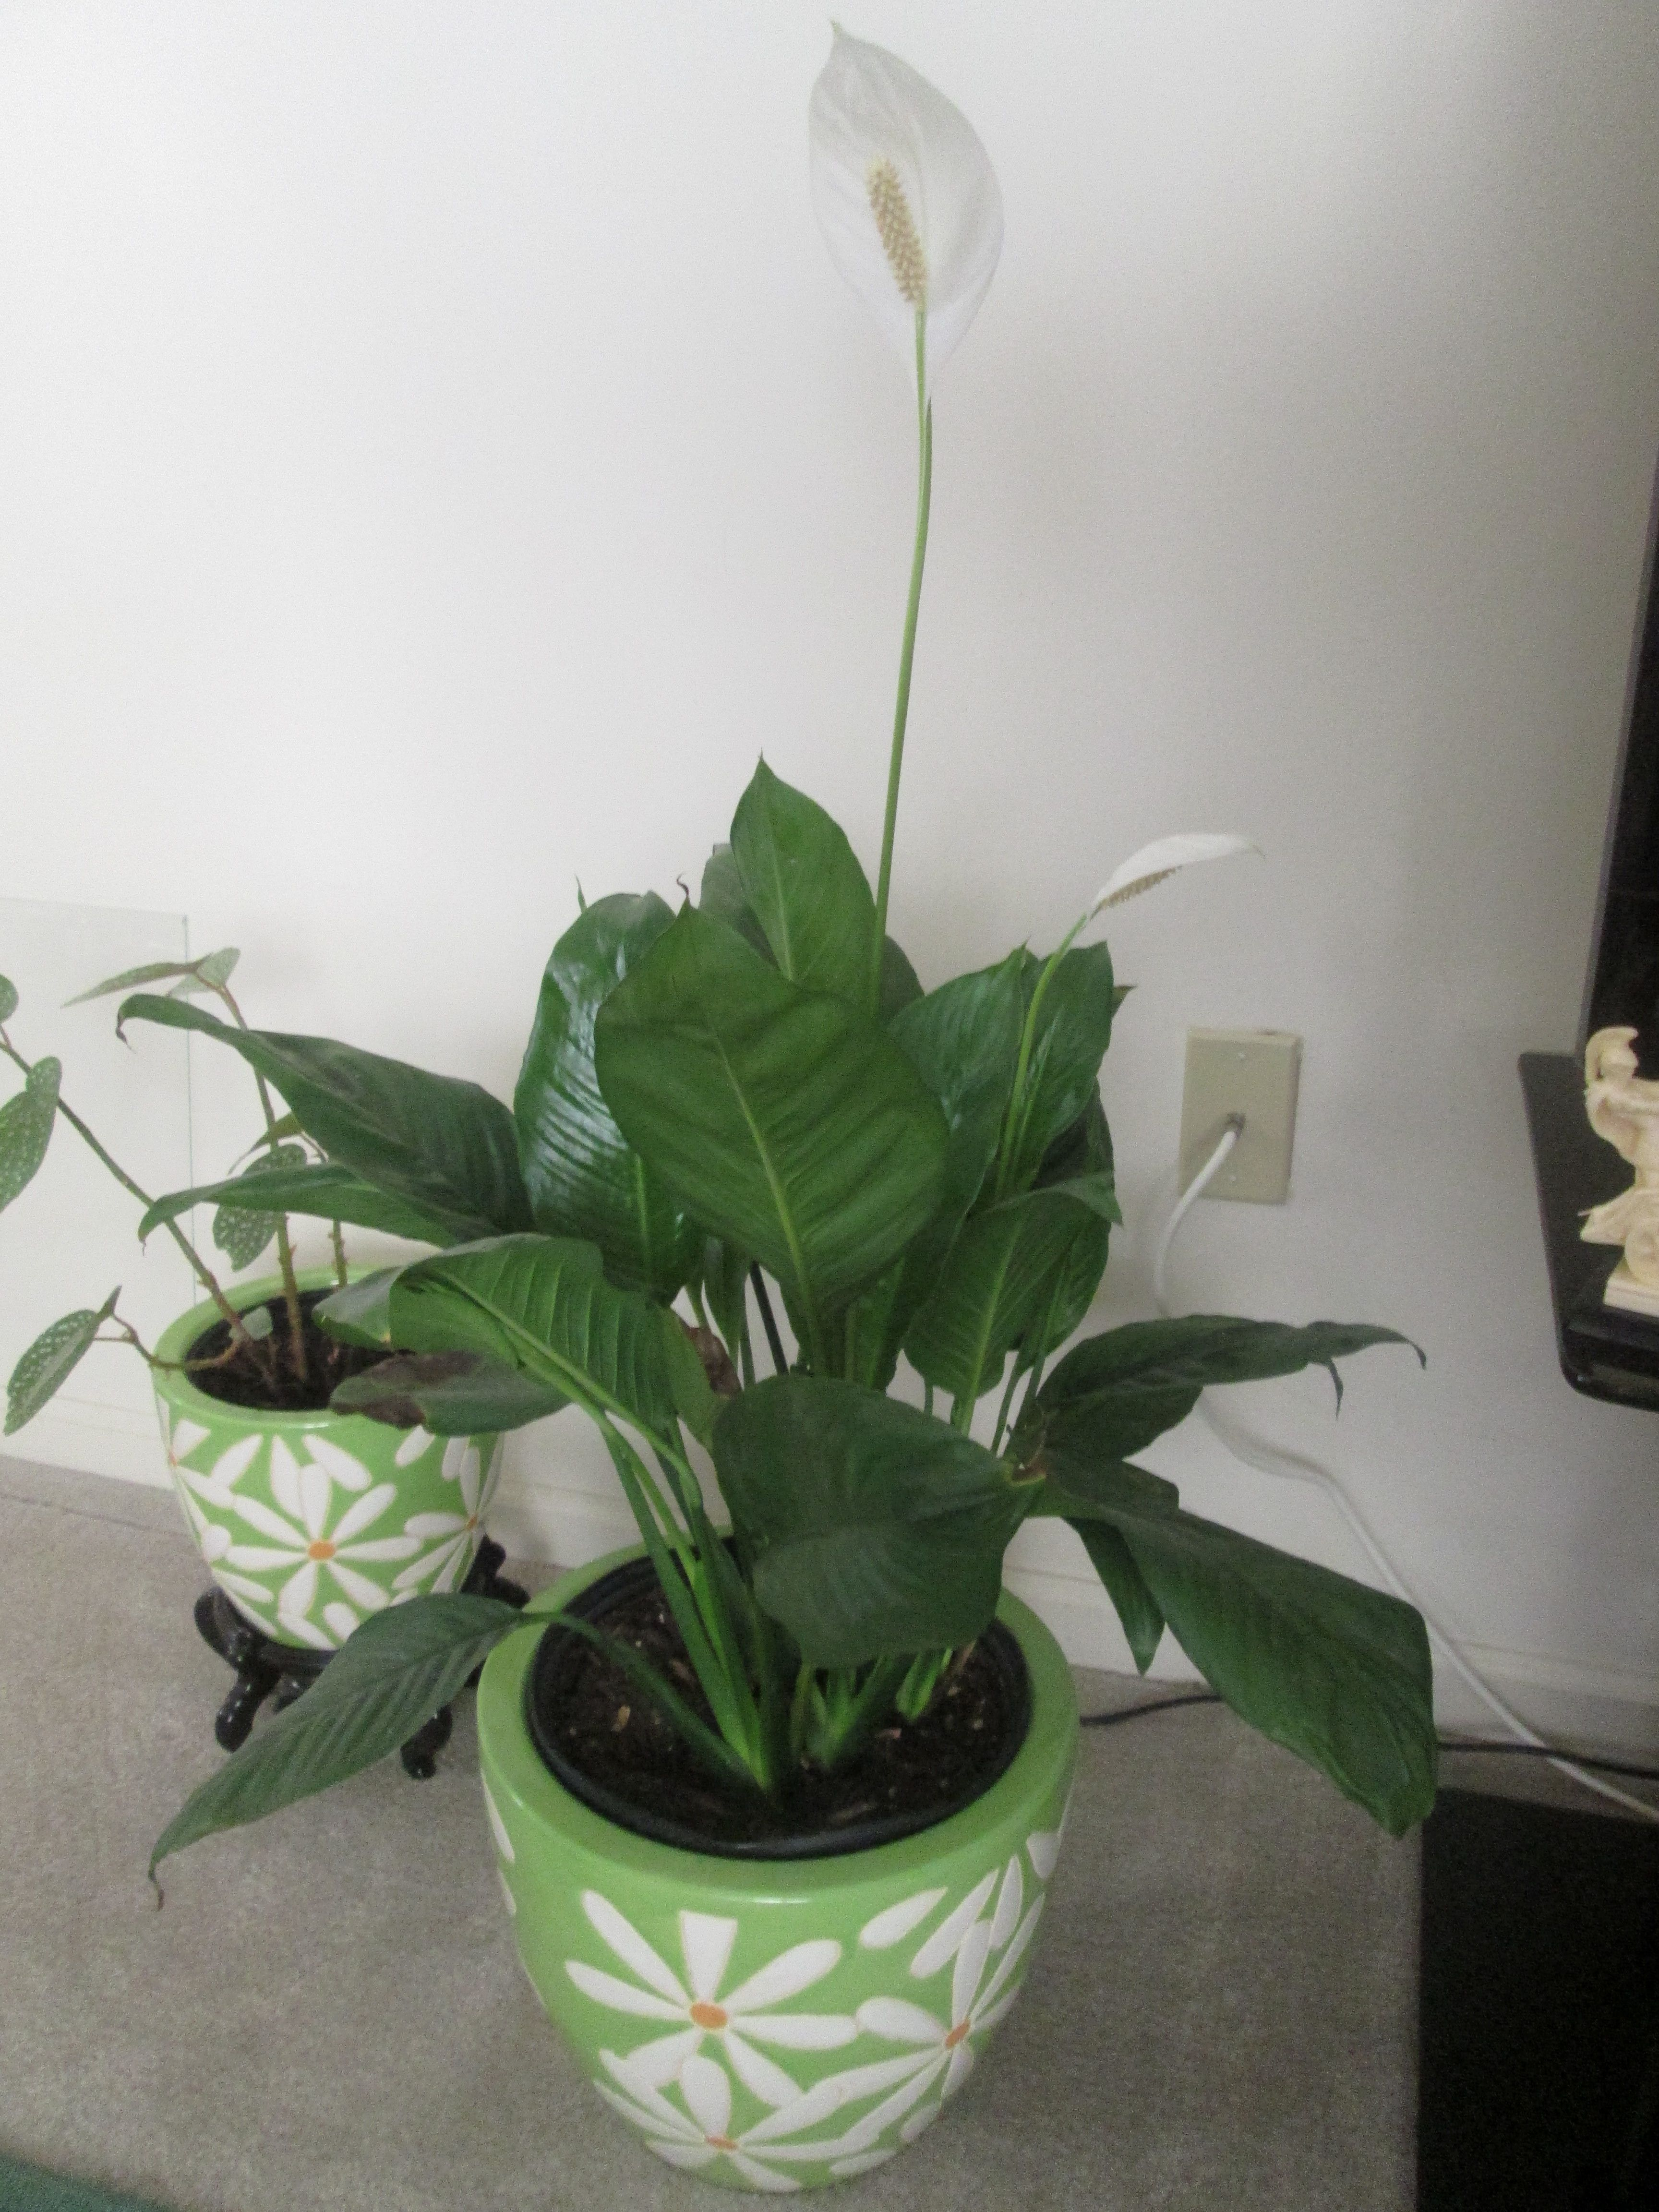 White flowers Peace Lily, Spathiphyllum flowering Peace